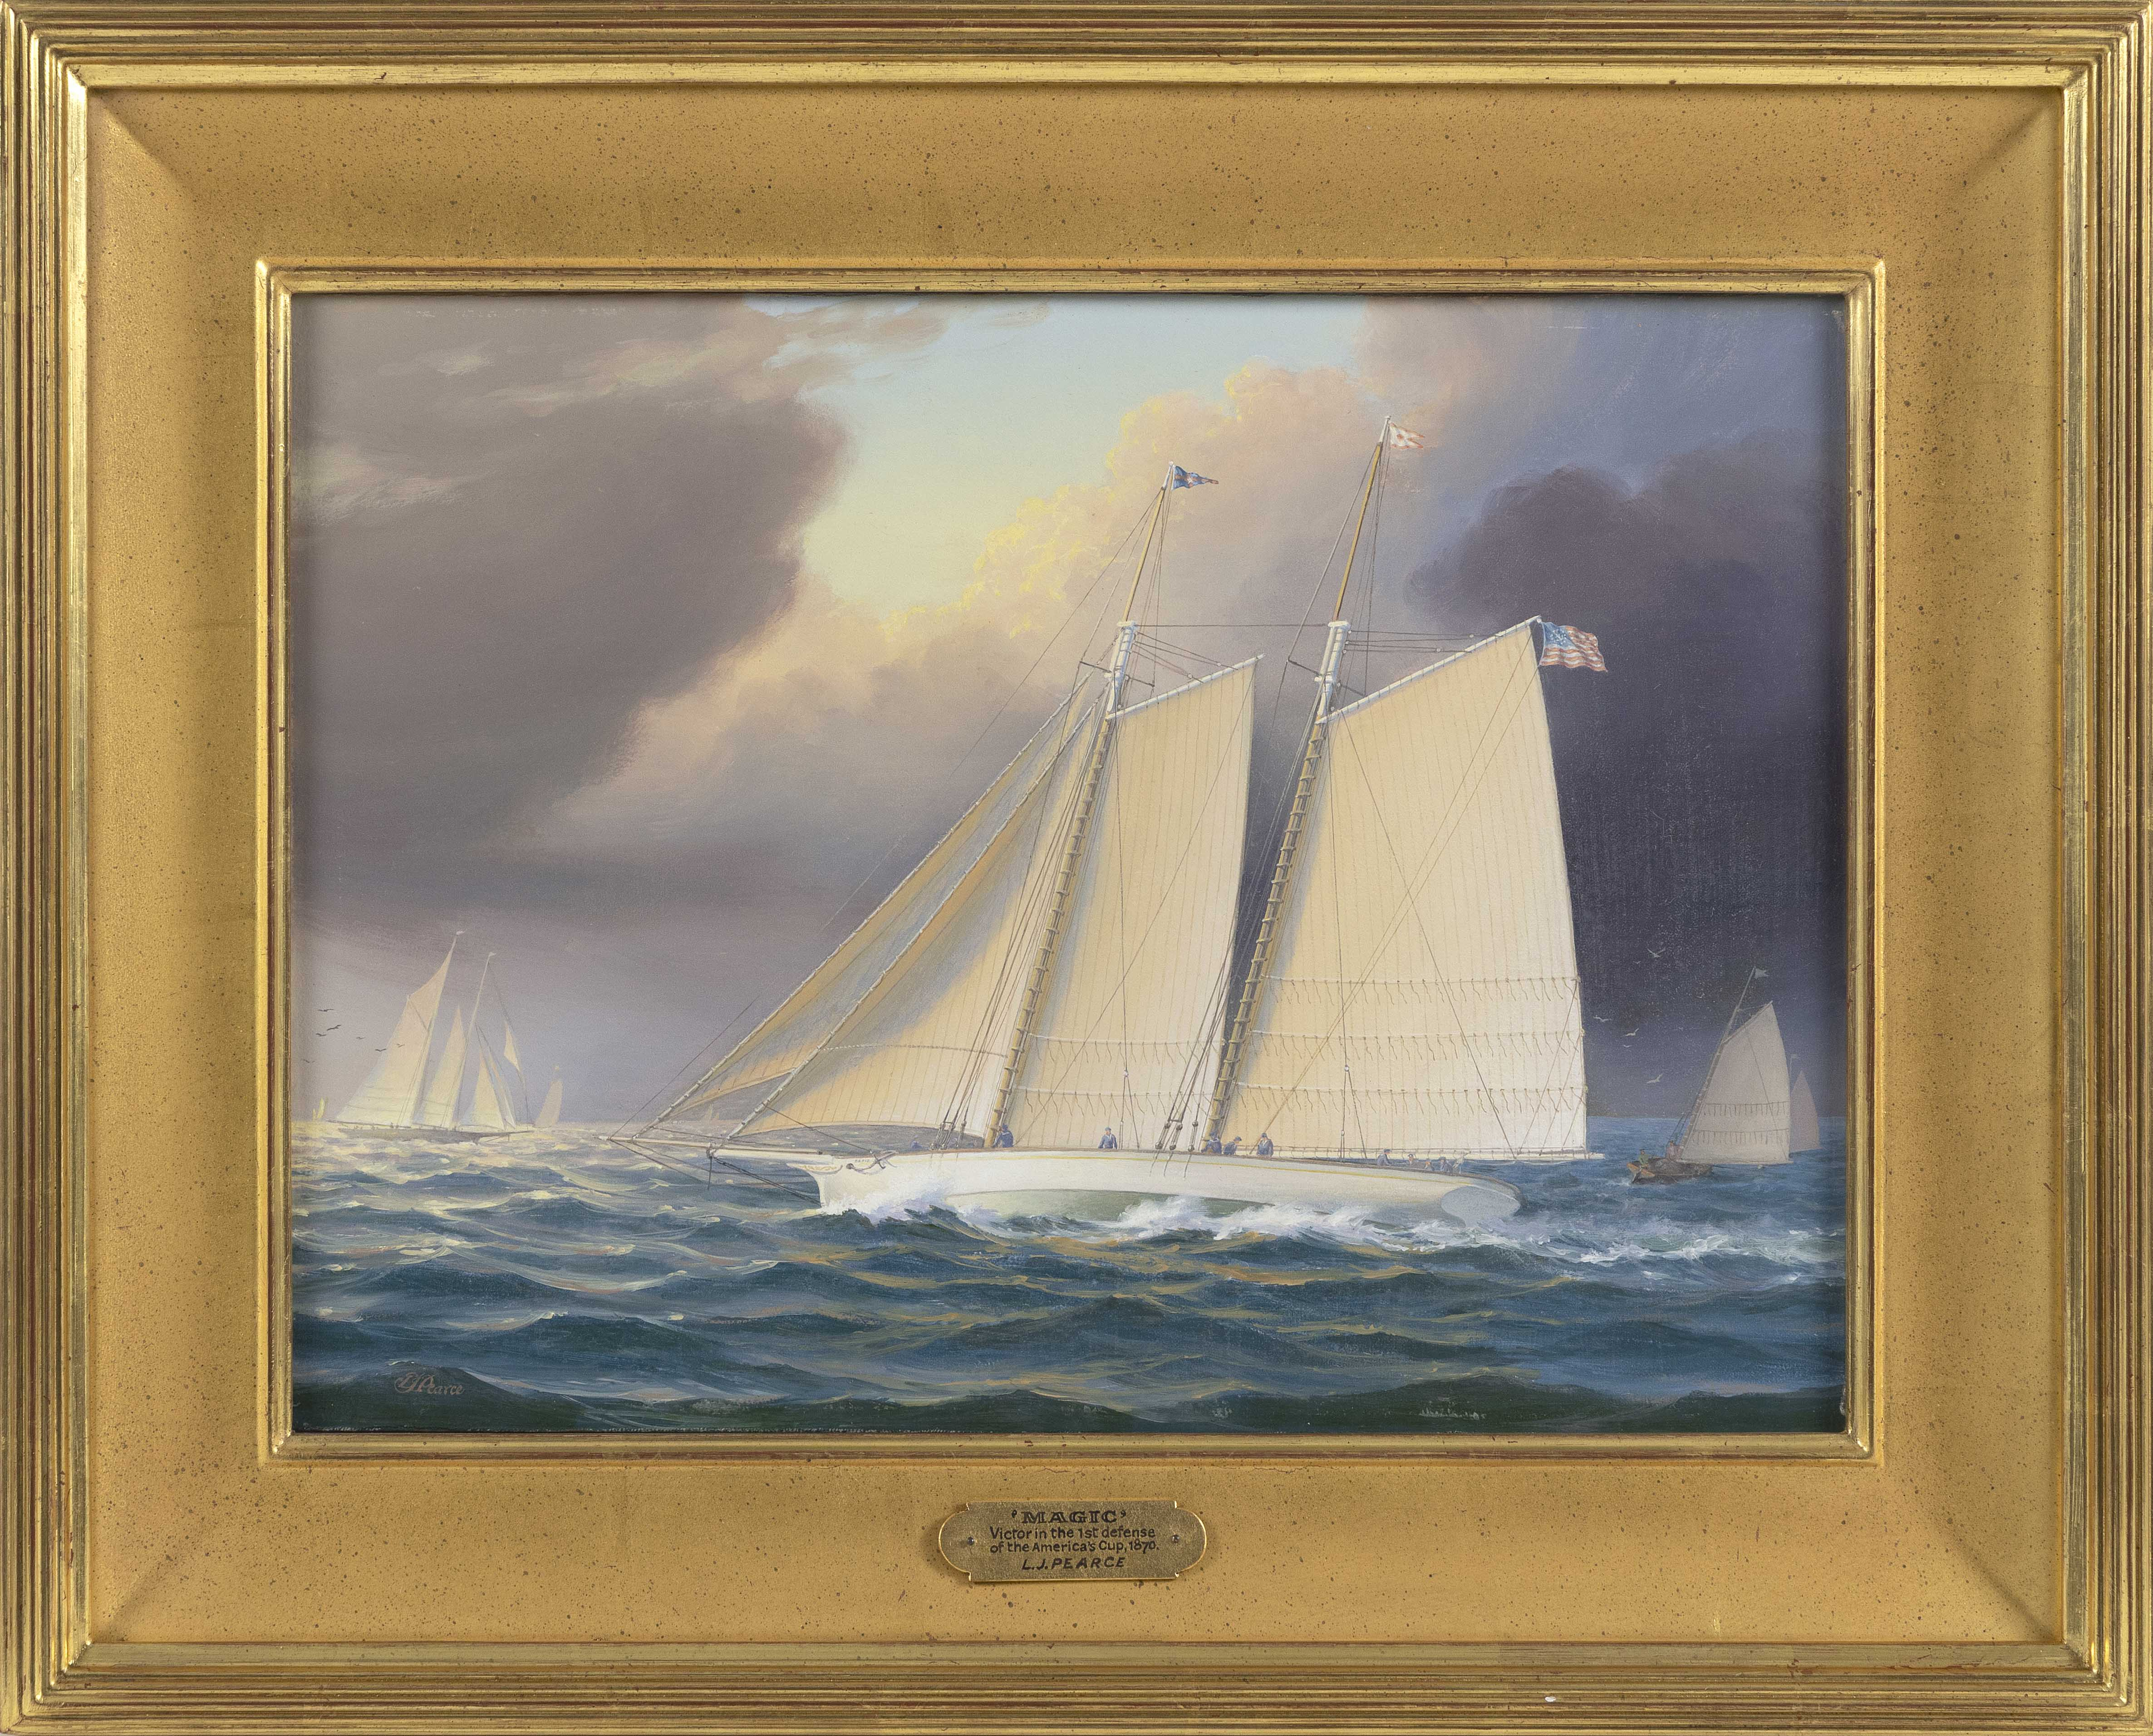 """LEONARD JOHN PEARCE (England, b. 1932), """"Magic - Victor in the First Defense of the America's Cup 1870""""., Oil on board, 11"""" x 15"""". Framed 16.5"""" x 20.5""""."""